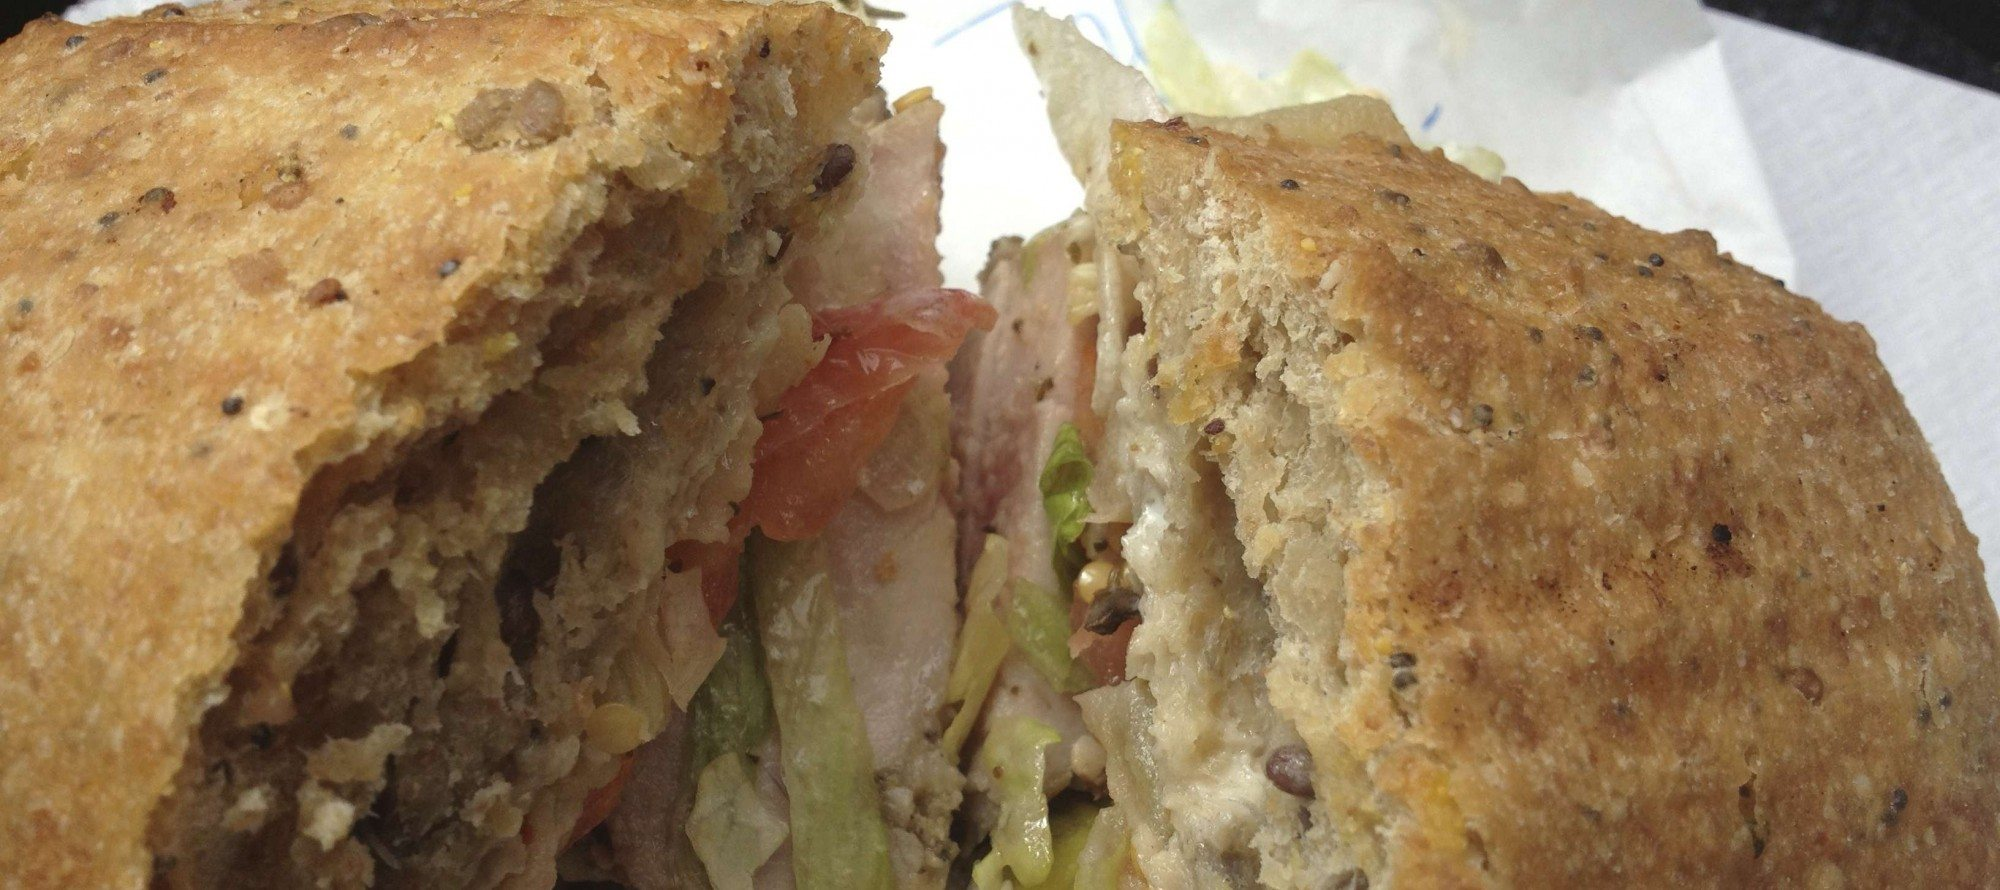 WEEKLY LUNCH PICK: Working near Dows Lake/Little Italy? Stop by for Morning Owl's panini